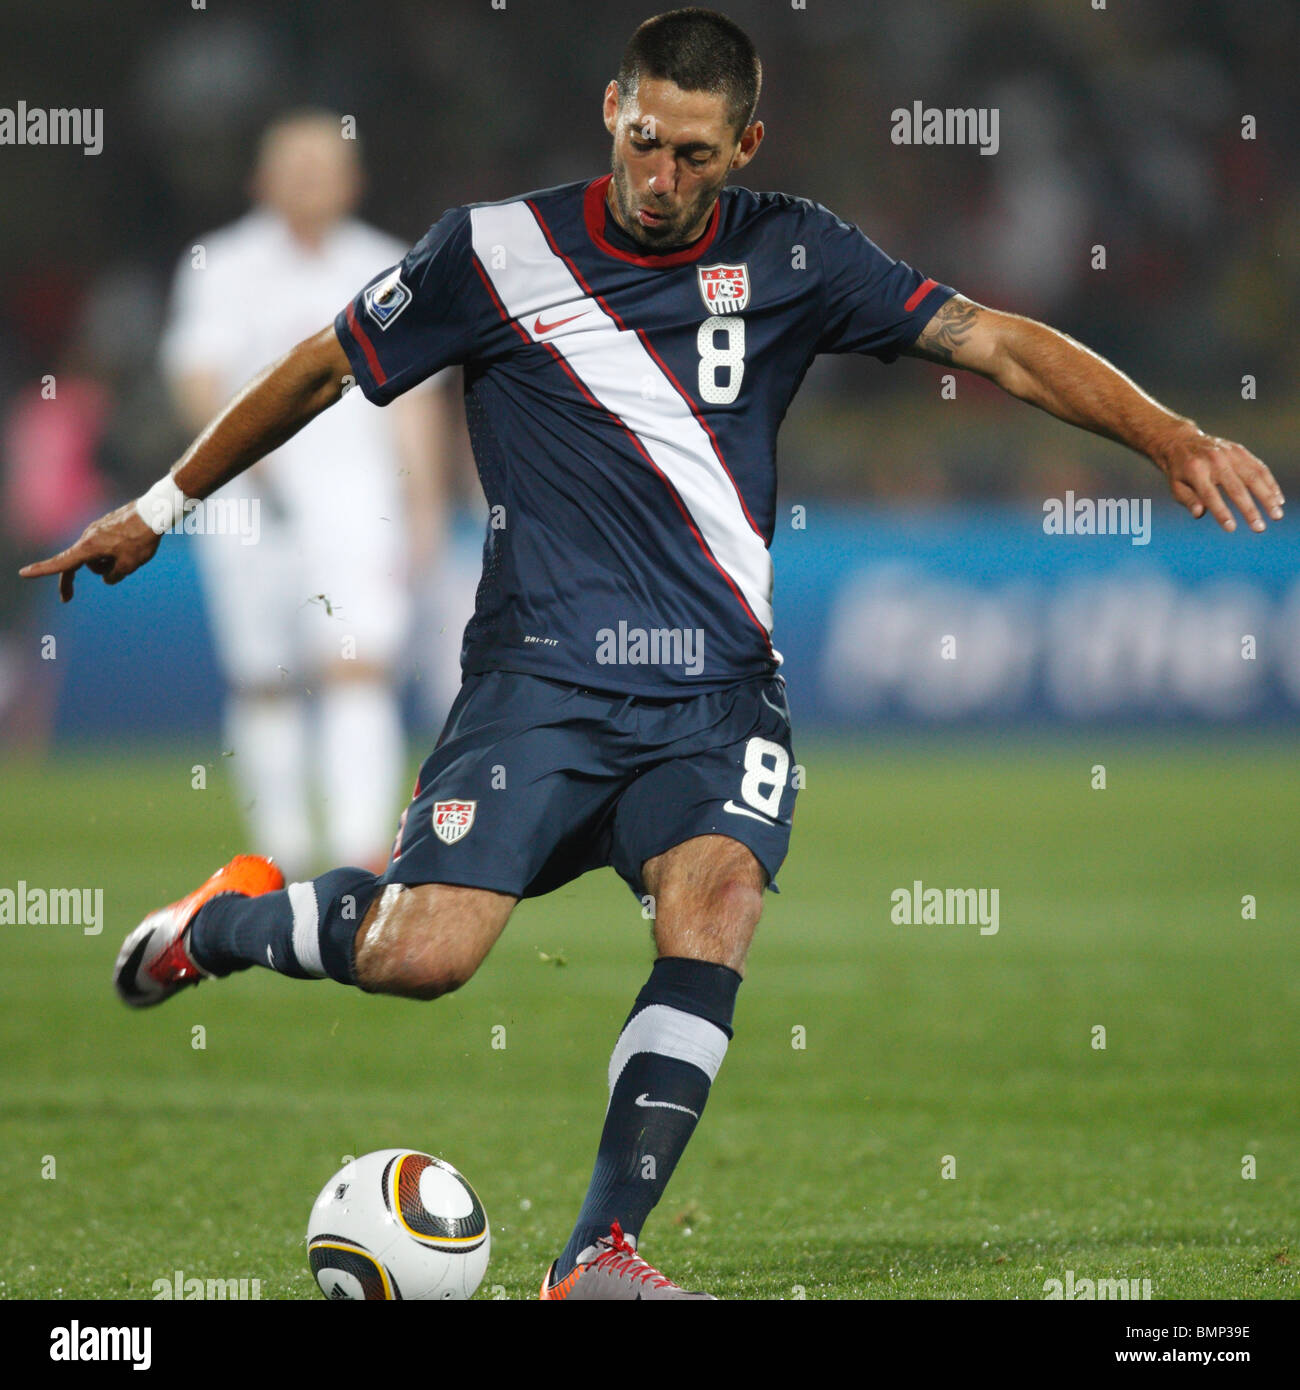 Clint Dempsey of the United States sets to kick the ball during a 2010 FIFA World Cup football match against England. - Stock Image